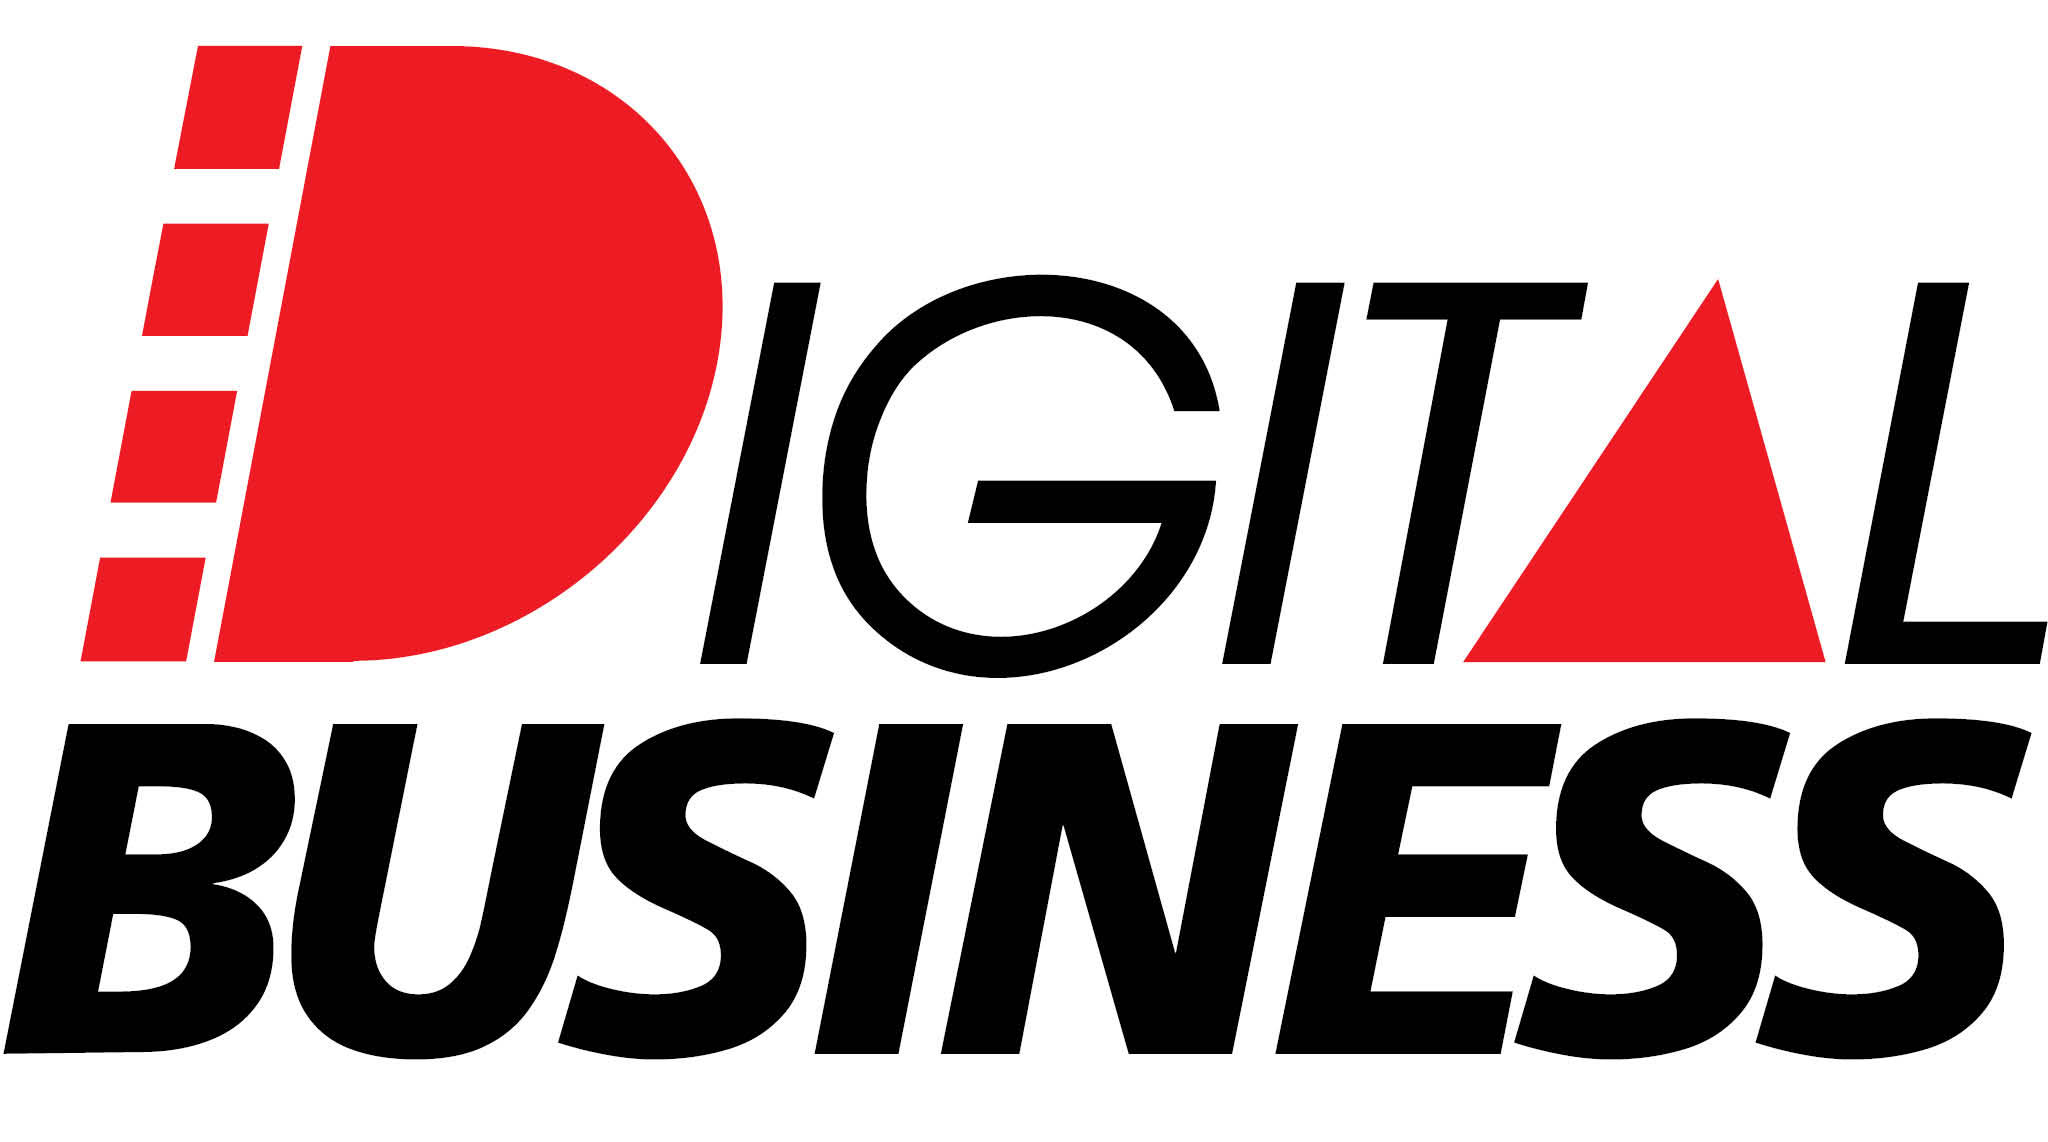 Digital Business logo